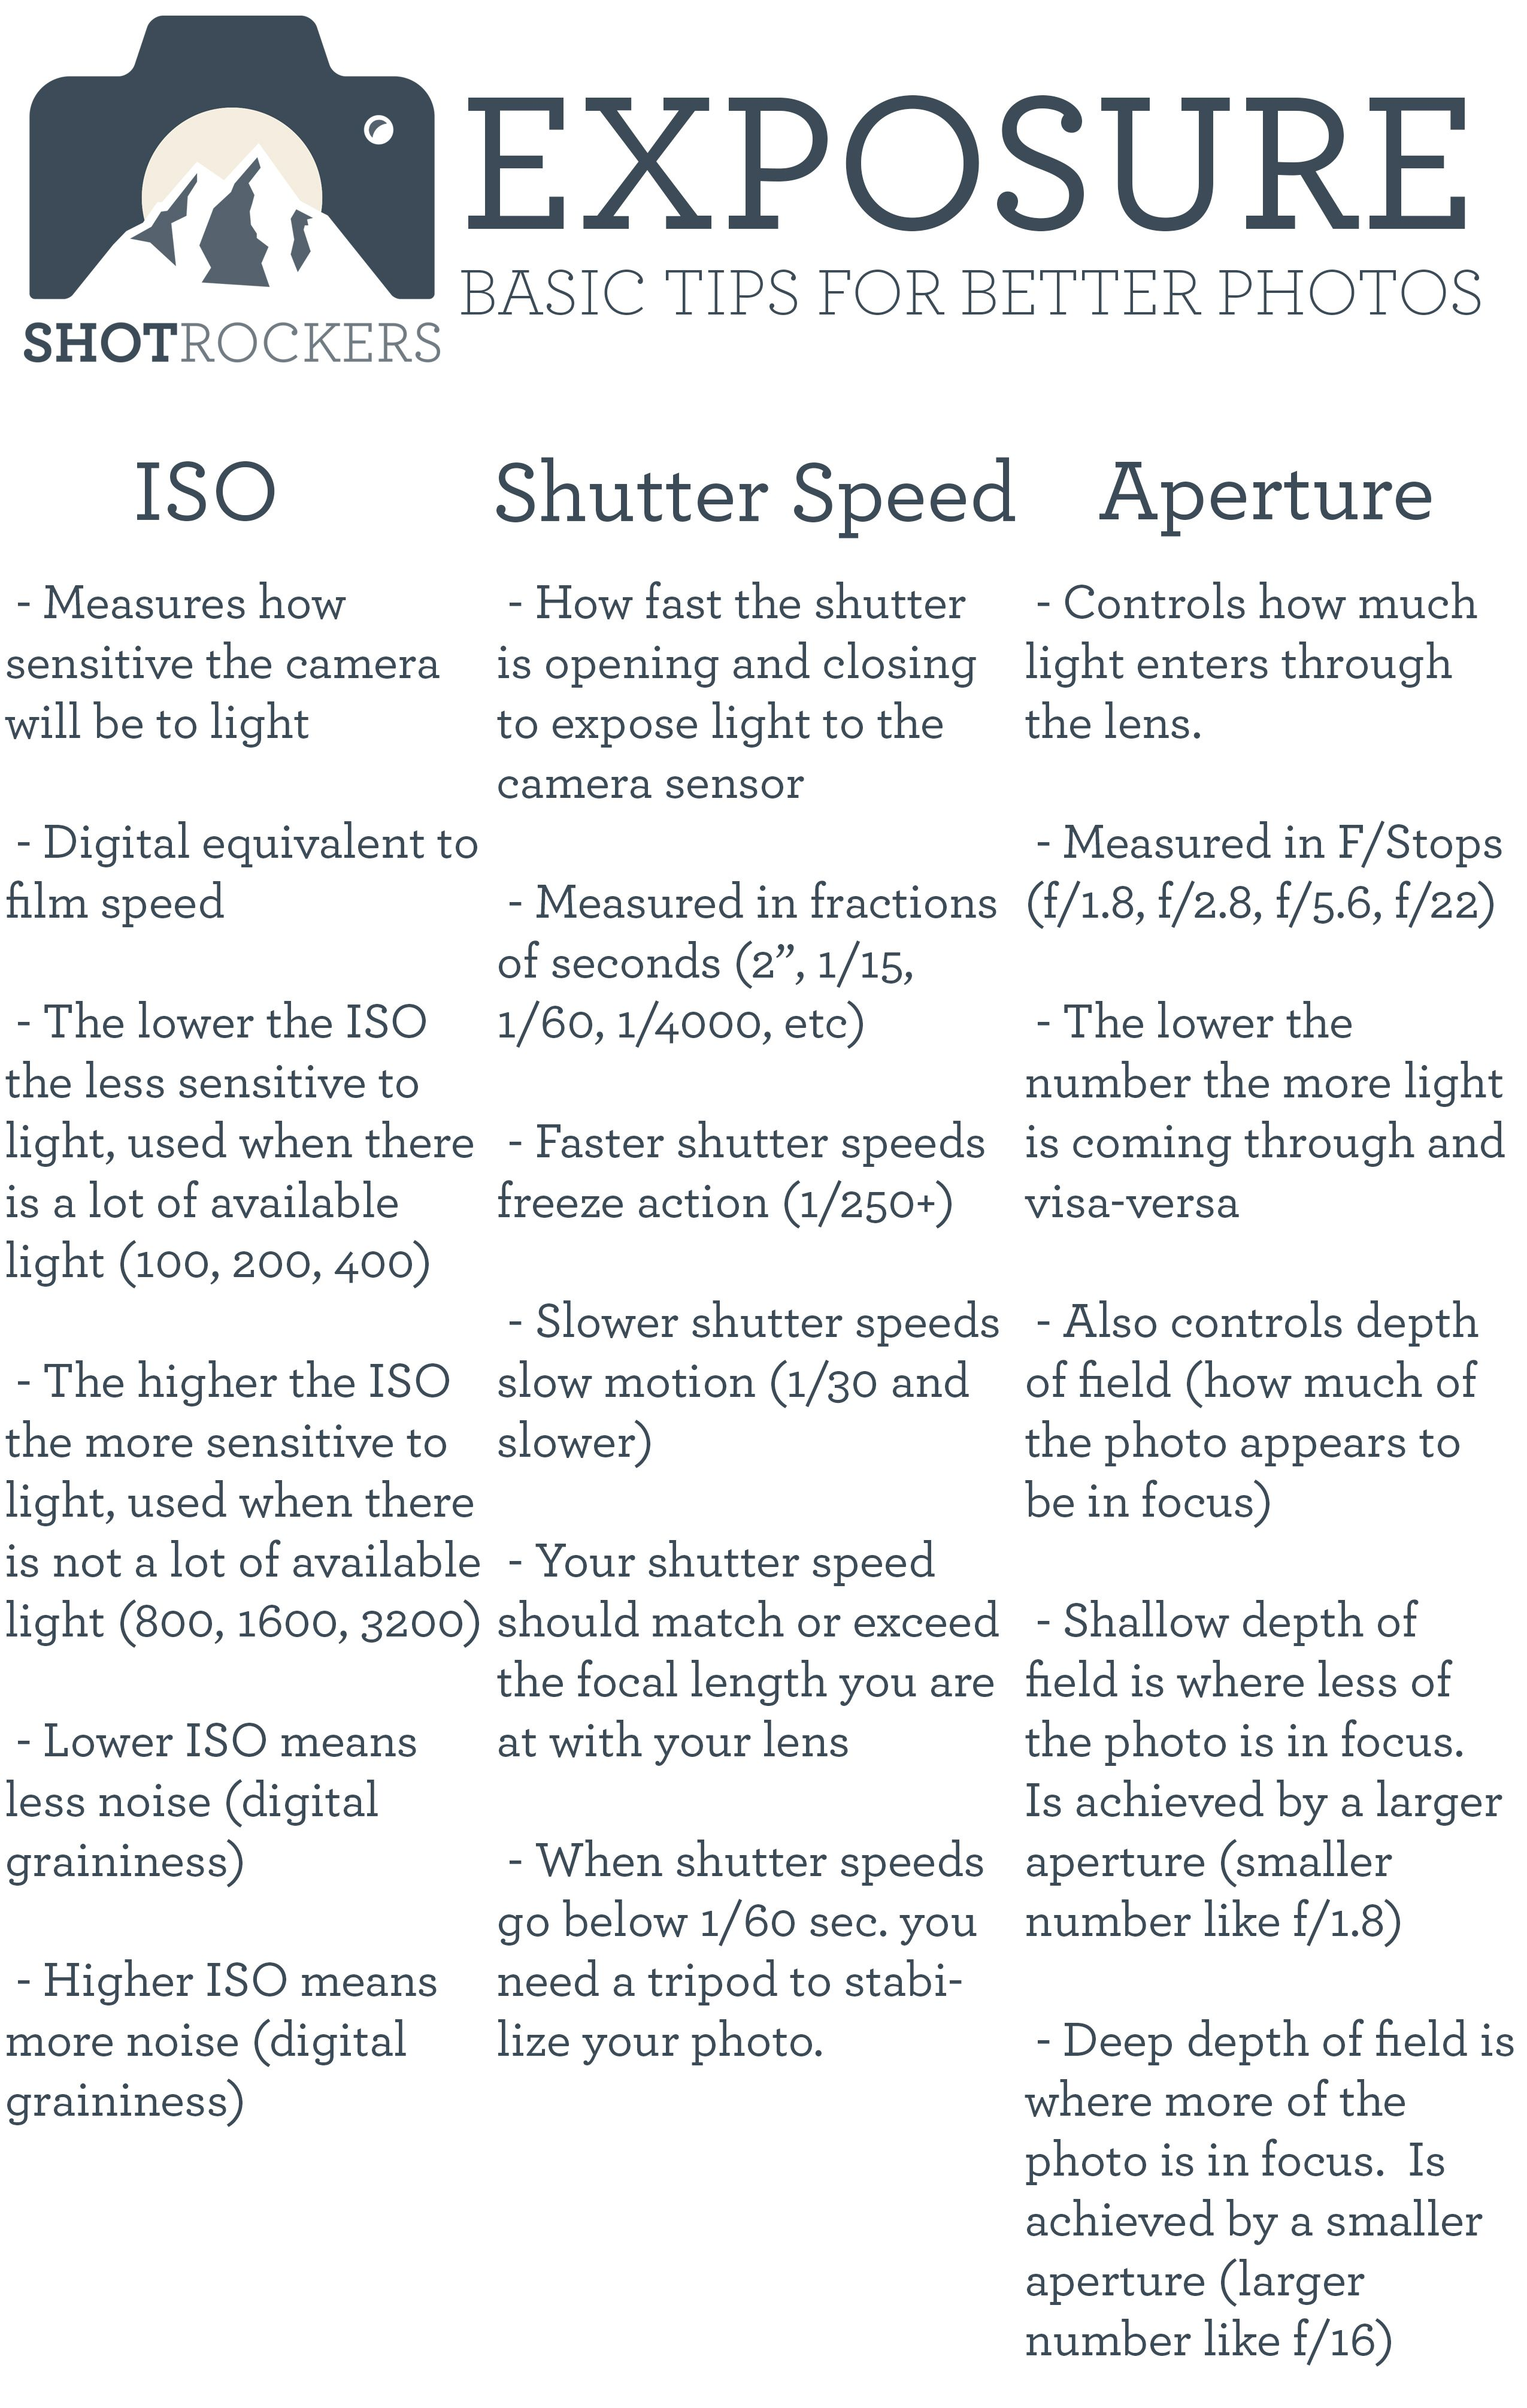 Hey Everyone Here Is An Awesome Simple Guide To Exposure